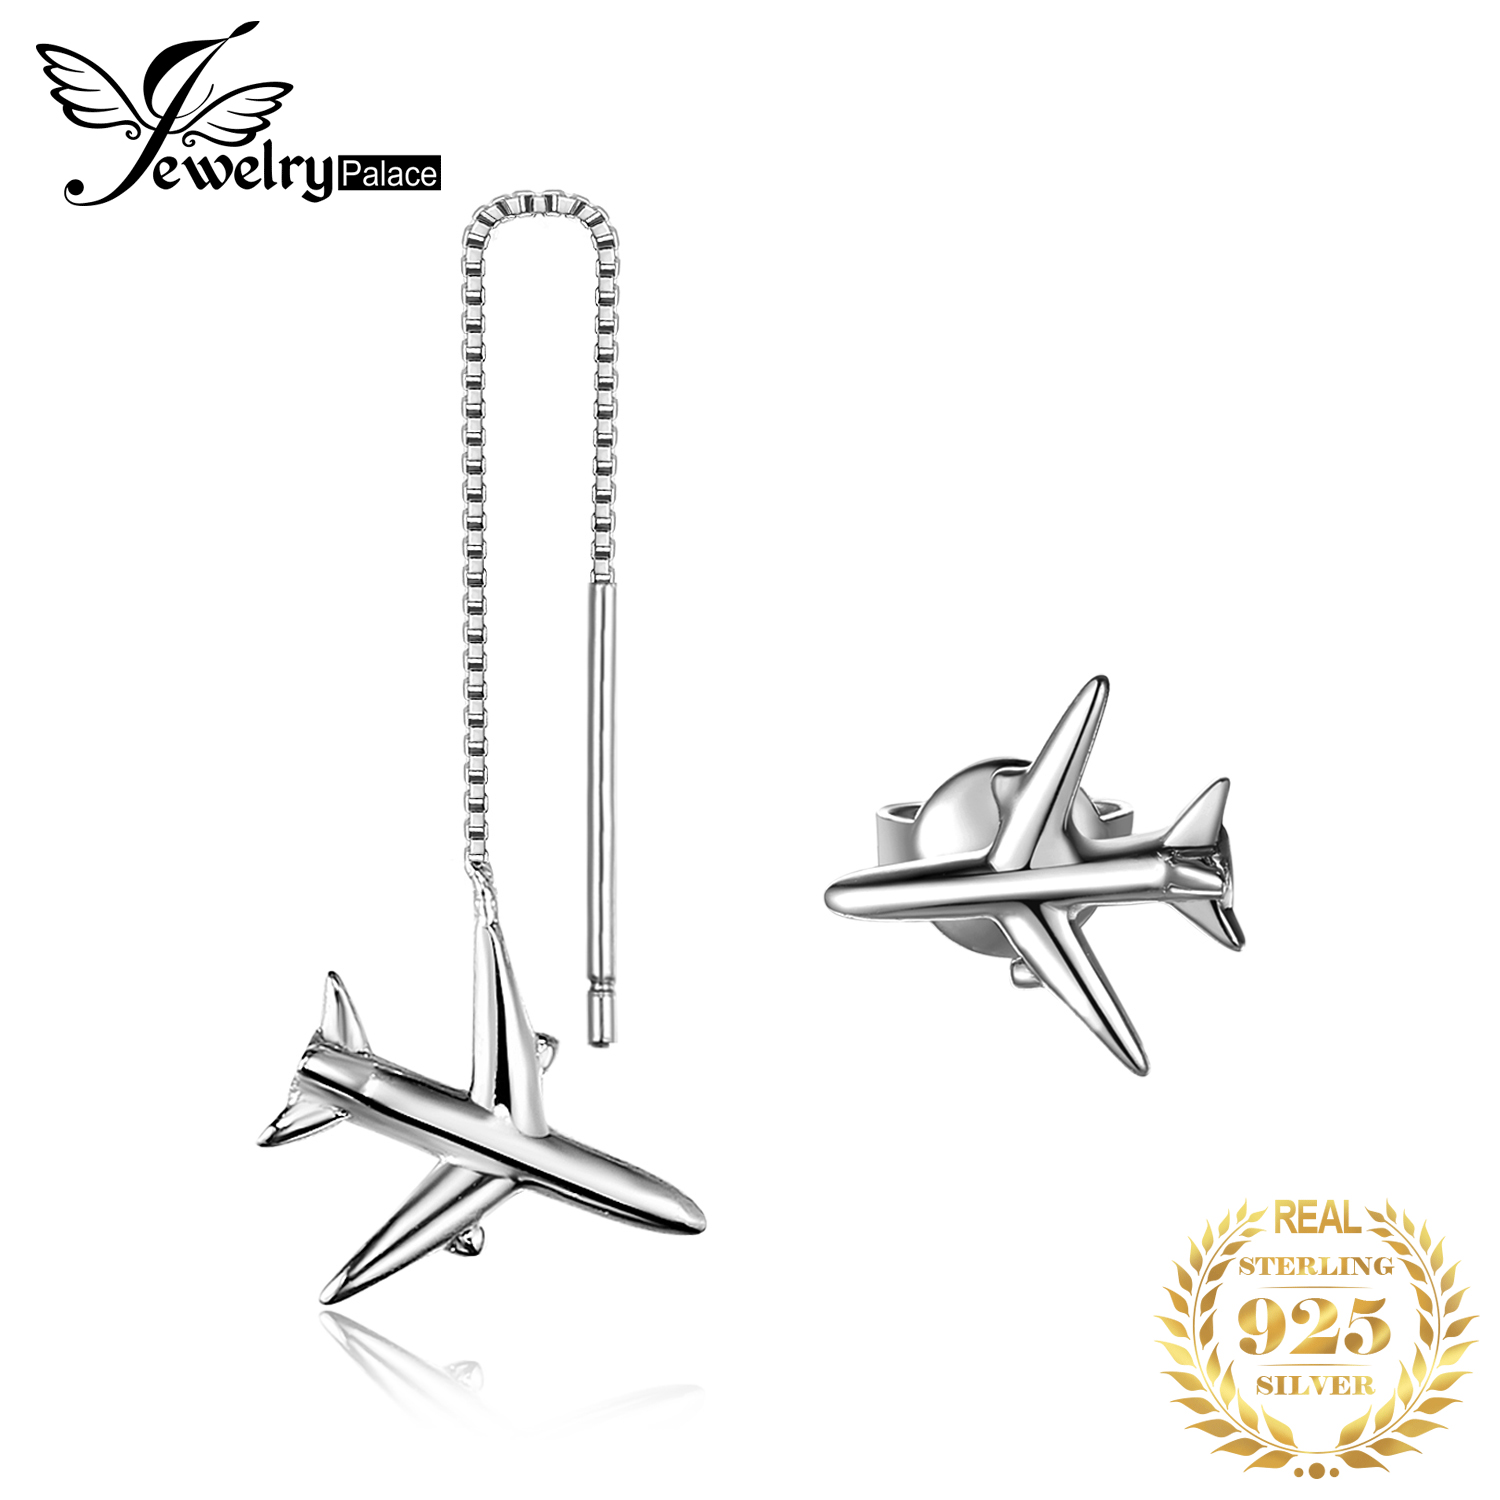 JewelryPalace Airplane Thread Drop Earrings 925 Sterling Silver Earrings For Women Girls Korean Earrings Fashion Jewelry image